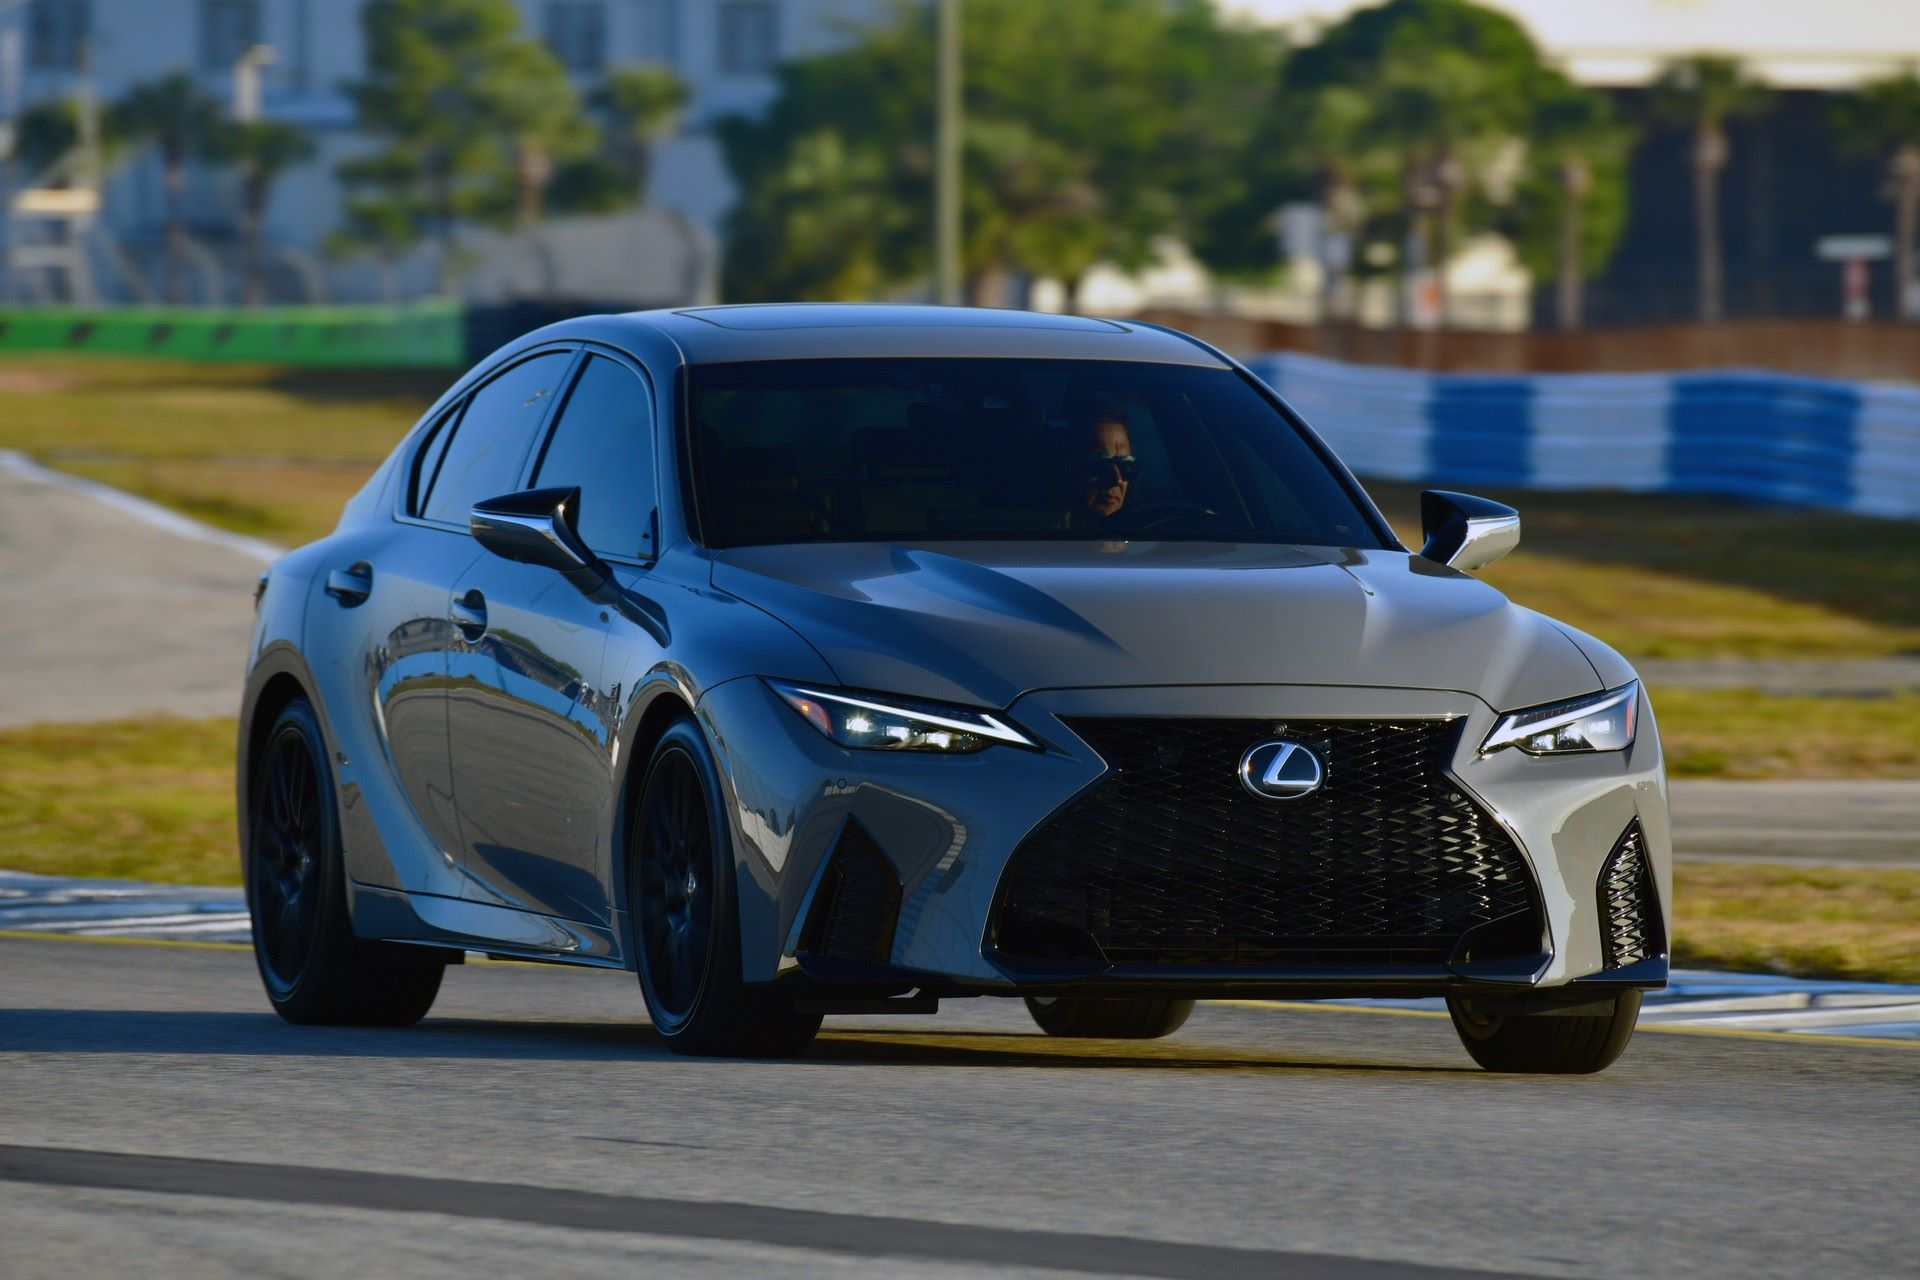 Lexus-IS-500-F-Sport-Performance-Launch-Edition-39